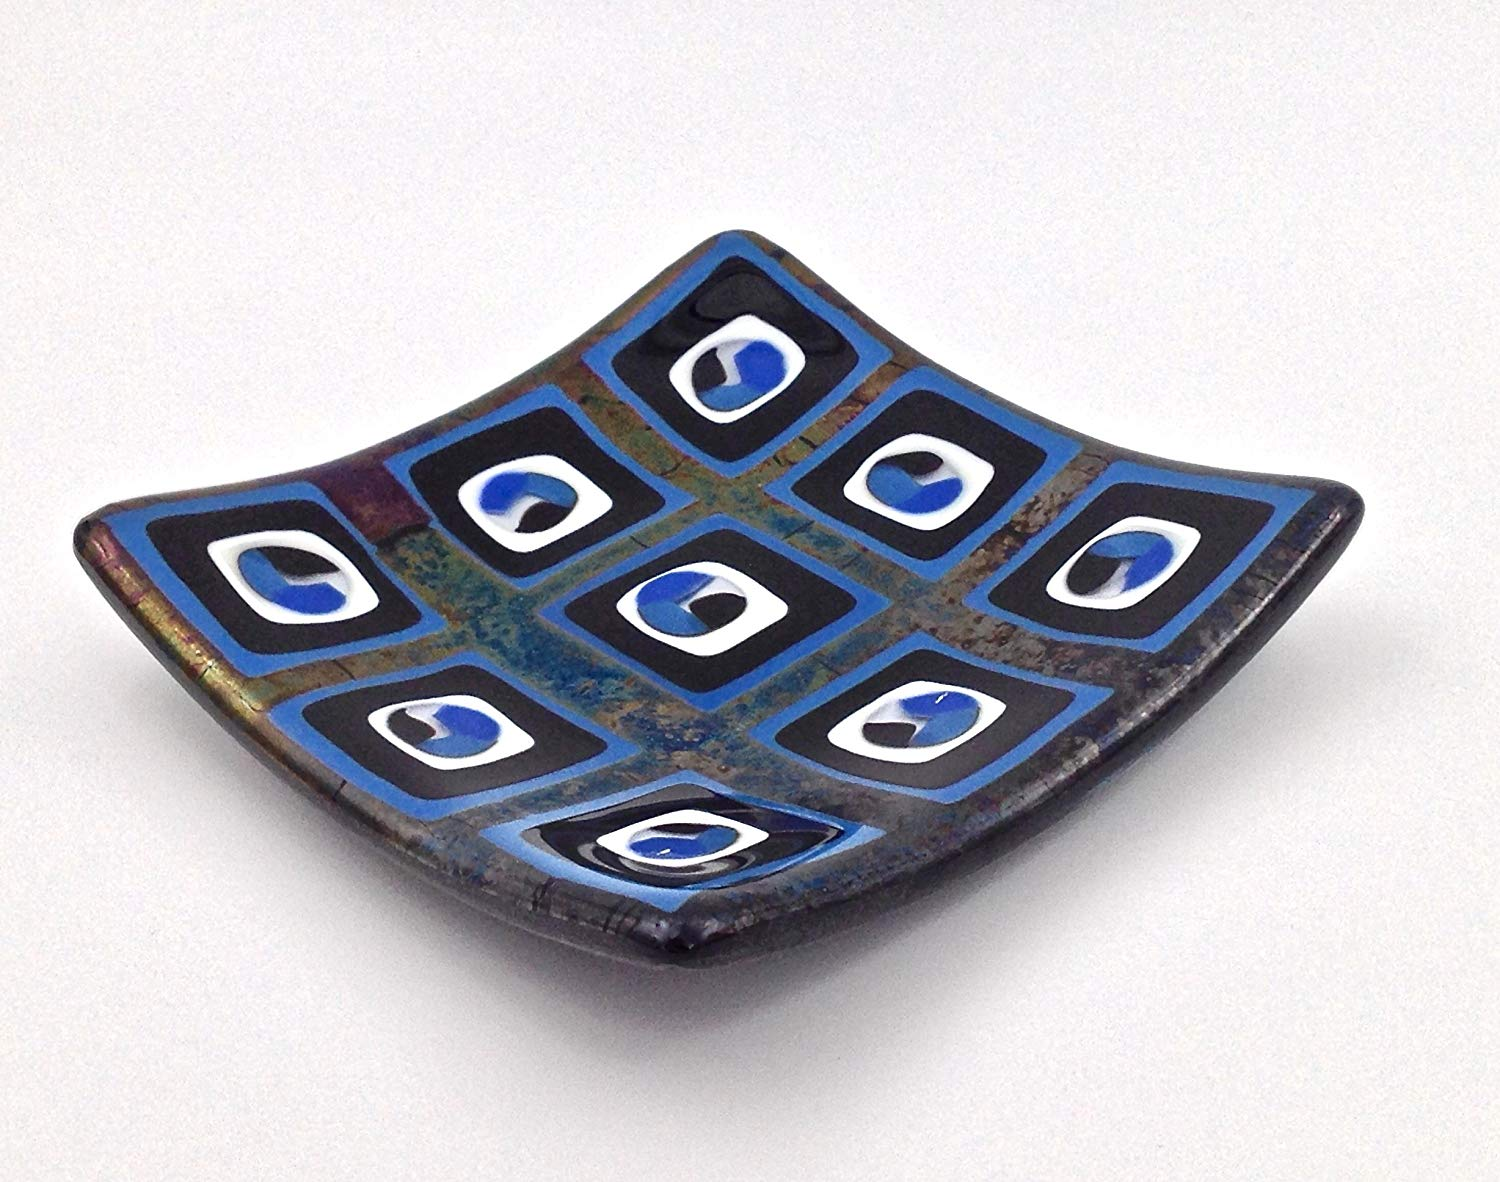 """6"""" Handcrafted Blue, Black & White Mid-Century Modern Fused Glass Decorative Plate"""